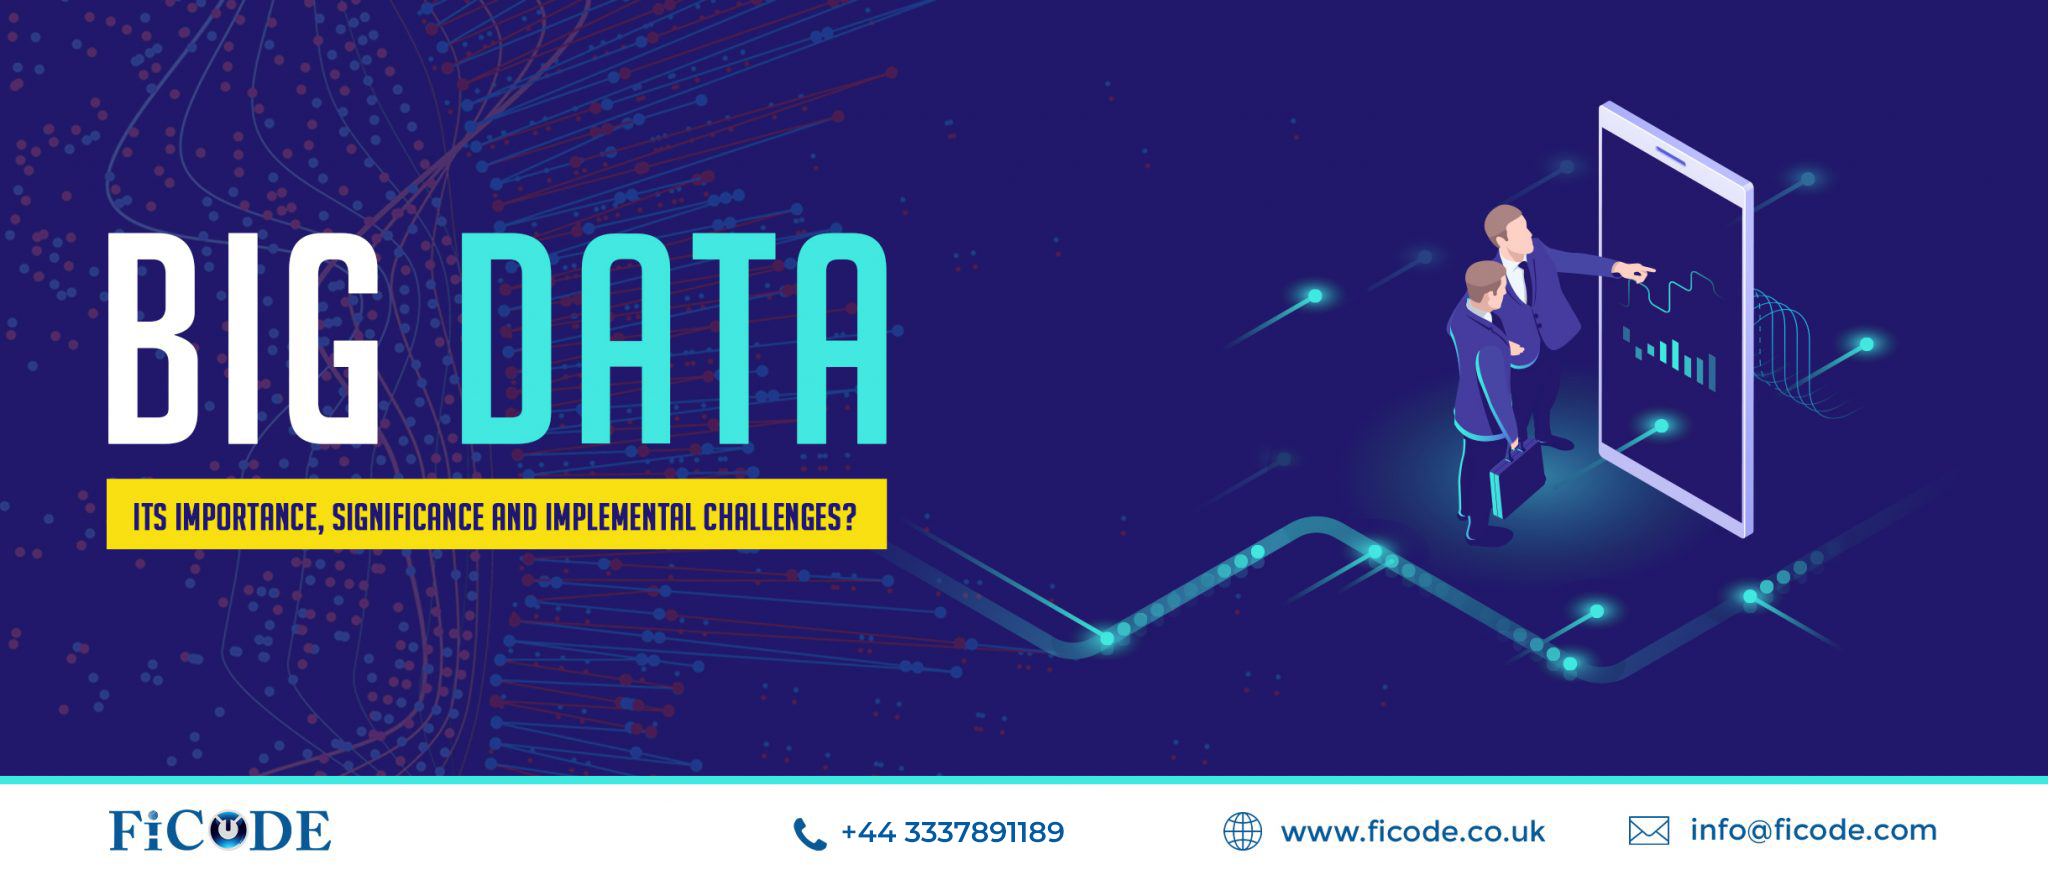 What is Big Data, its importance, significance and implementation challenges?